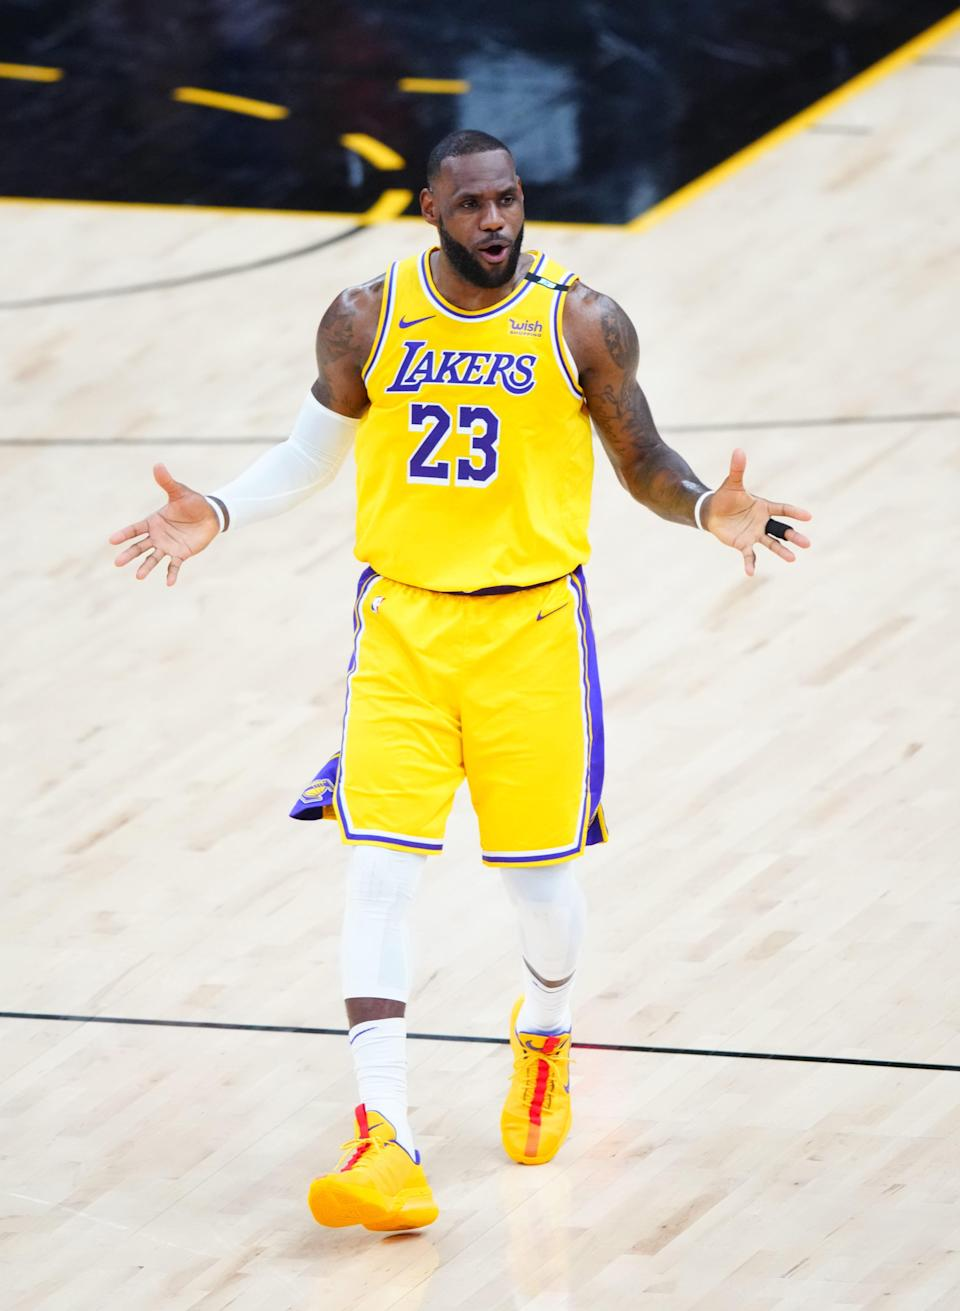 Los Angeles Lakers forward LeBron James reacts against the Phoenix Suns during his team's Game 5 loss.